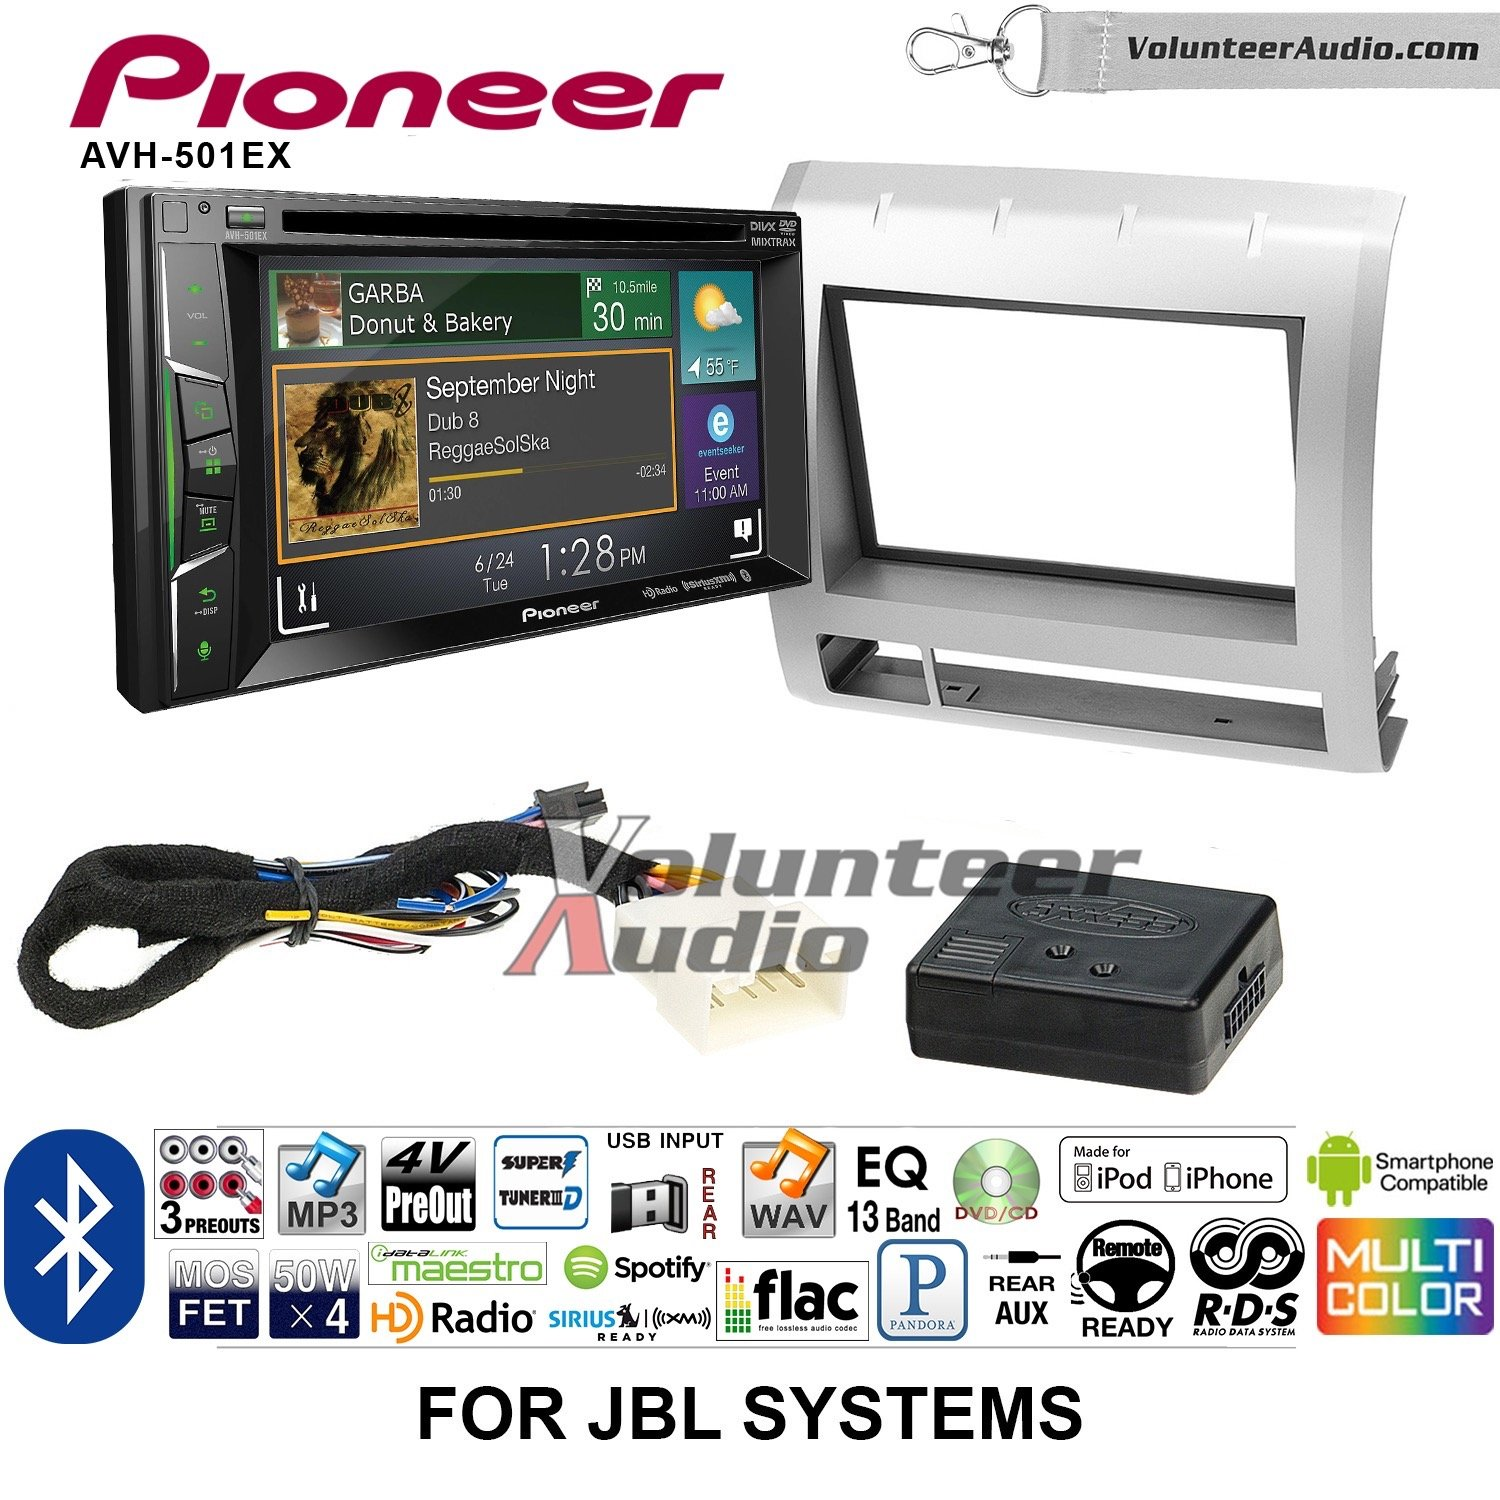 Volunteer Audio Pioneer AVH-501EX Double Din Radio Install Kit with DVD/CD Player Bluetooth Fits 2005-2011 Toyota Tacoma with Amplified System (Light Silver)